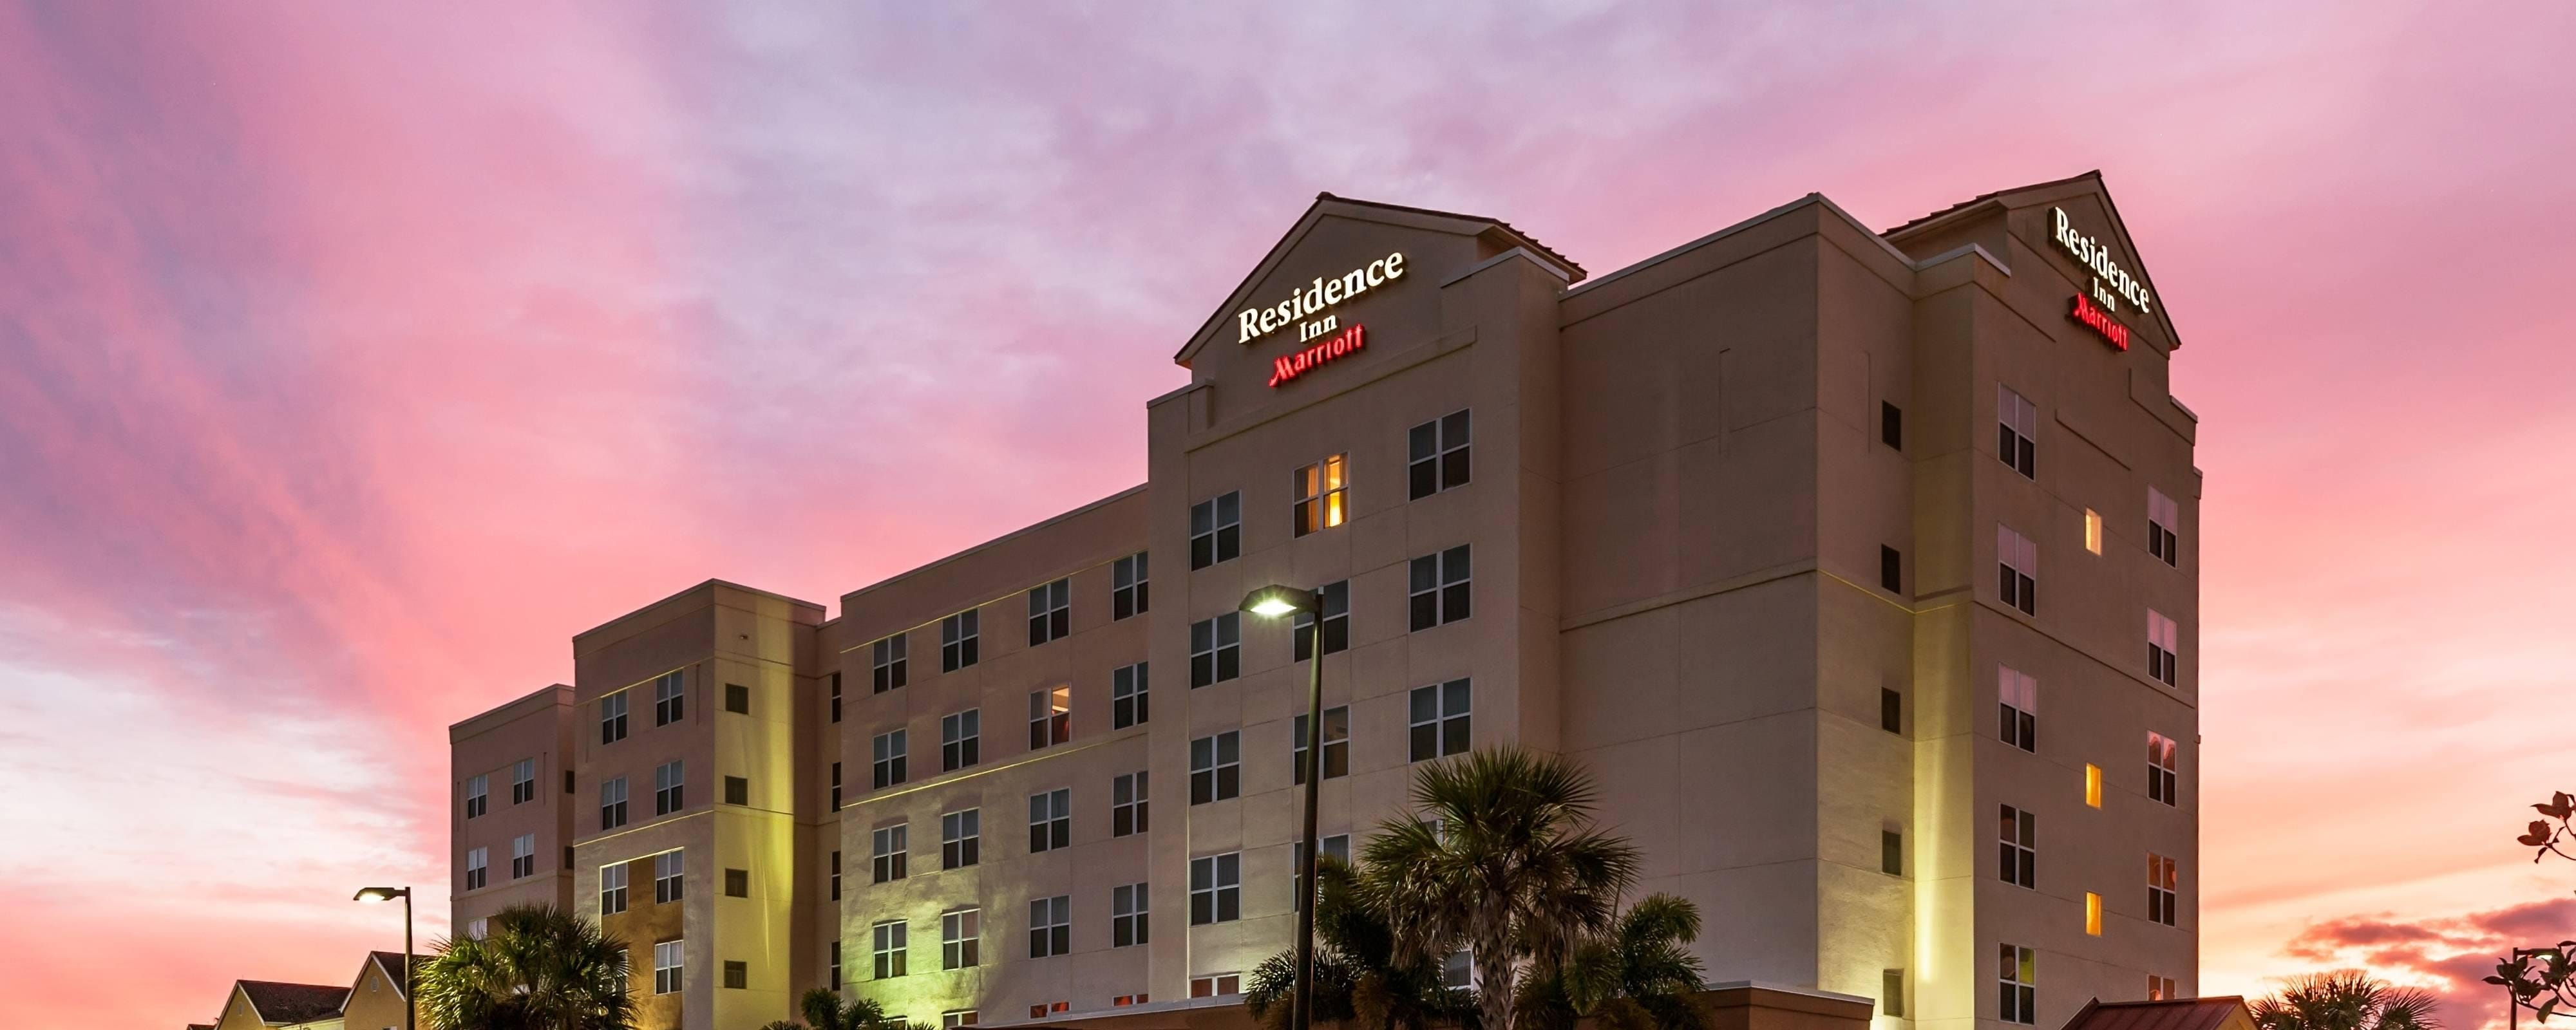 hotels with full kitchens in orlando florida smudge proof stainless steel kitchen appliances extended stay hotel near airport | residence inn